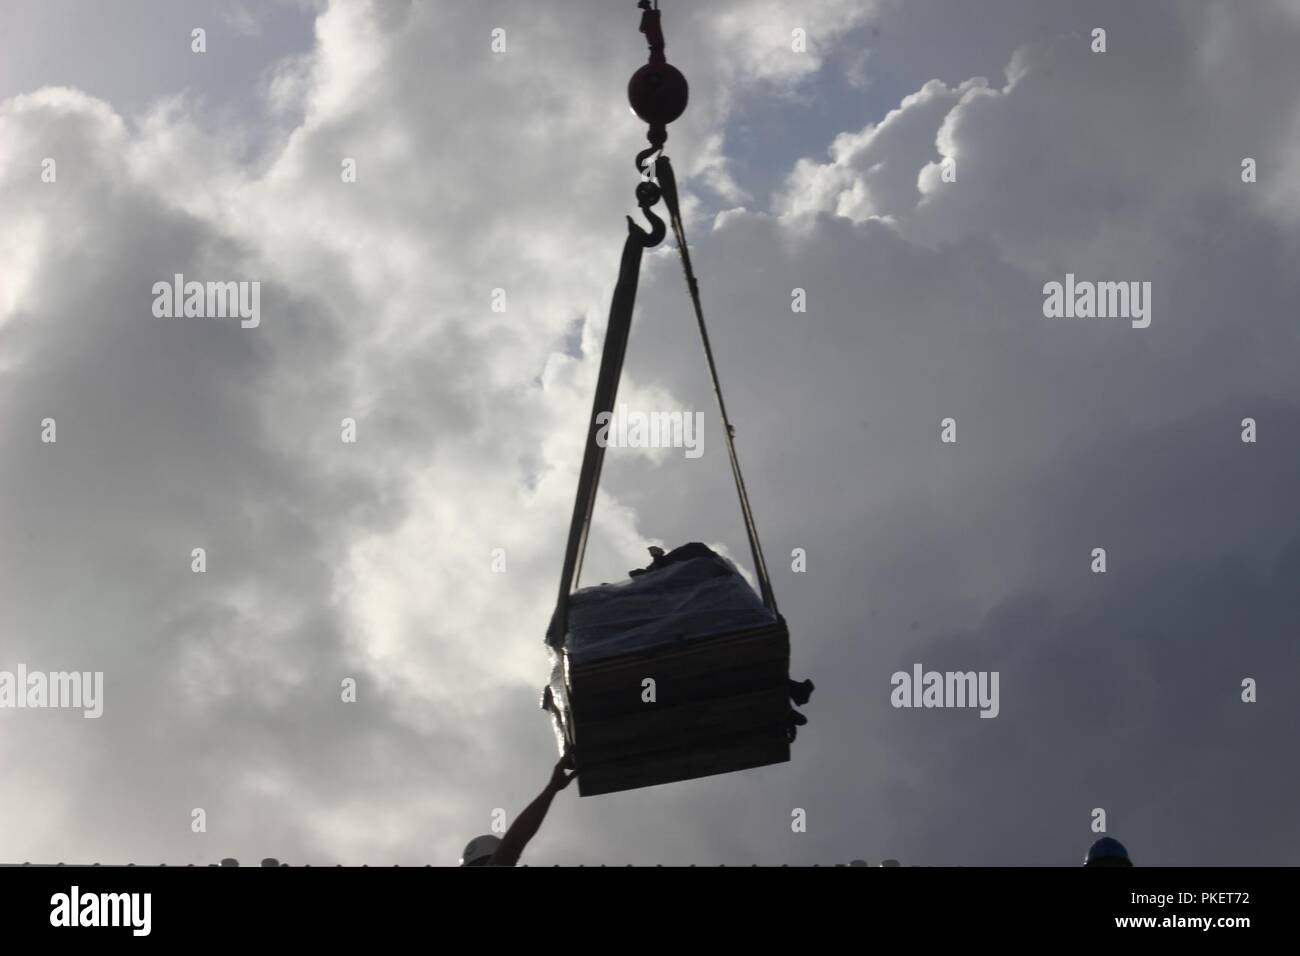 A pallet of seized cocaine hangs from a crane hook in Port Everglades, Aug. 1, 2018.  The drugs were seized during the interdiction of five suspected smuggling vessels and the recovery of two floating bile fields found off the coast of Mexico, Central and South America by Coast Guard Cutters Hamilton (WMSL-753), Alert (WMEC-630) and Venturous (WMEC-625). Coast Guard - Stock Image